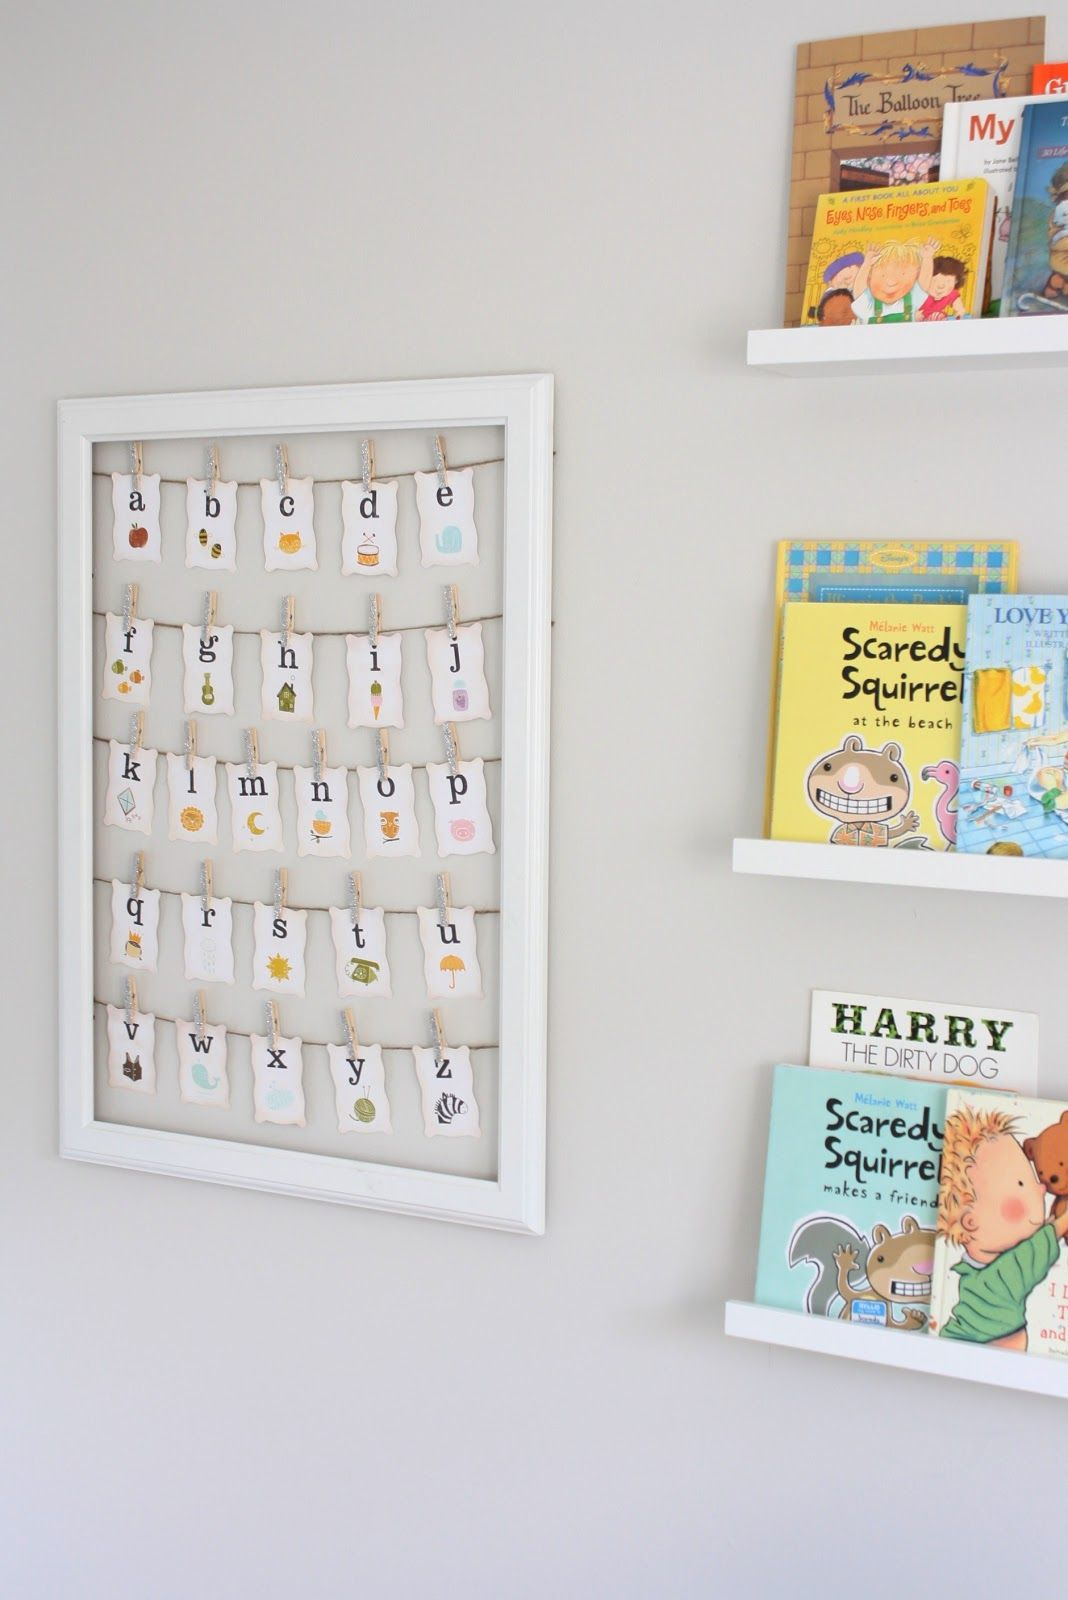 Cute Ideas For Nursery Walls Love The Book Display And Framed Alphabet Letters